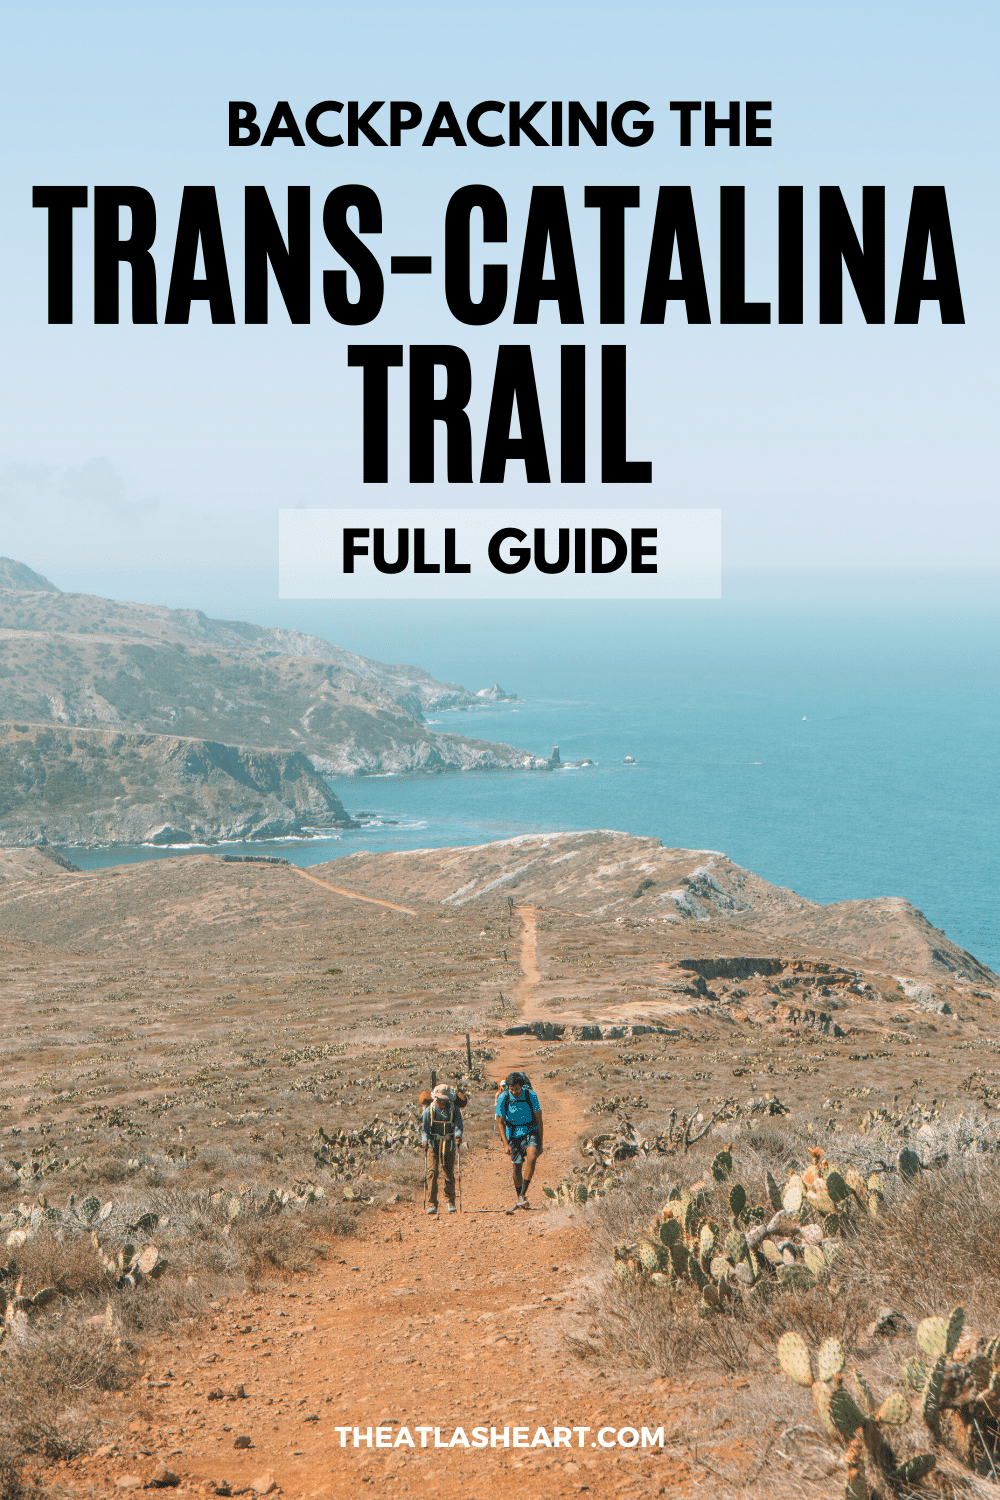 Backpacking the Trans-Catalina Trail in 5 Days | Full Guide